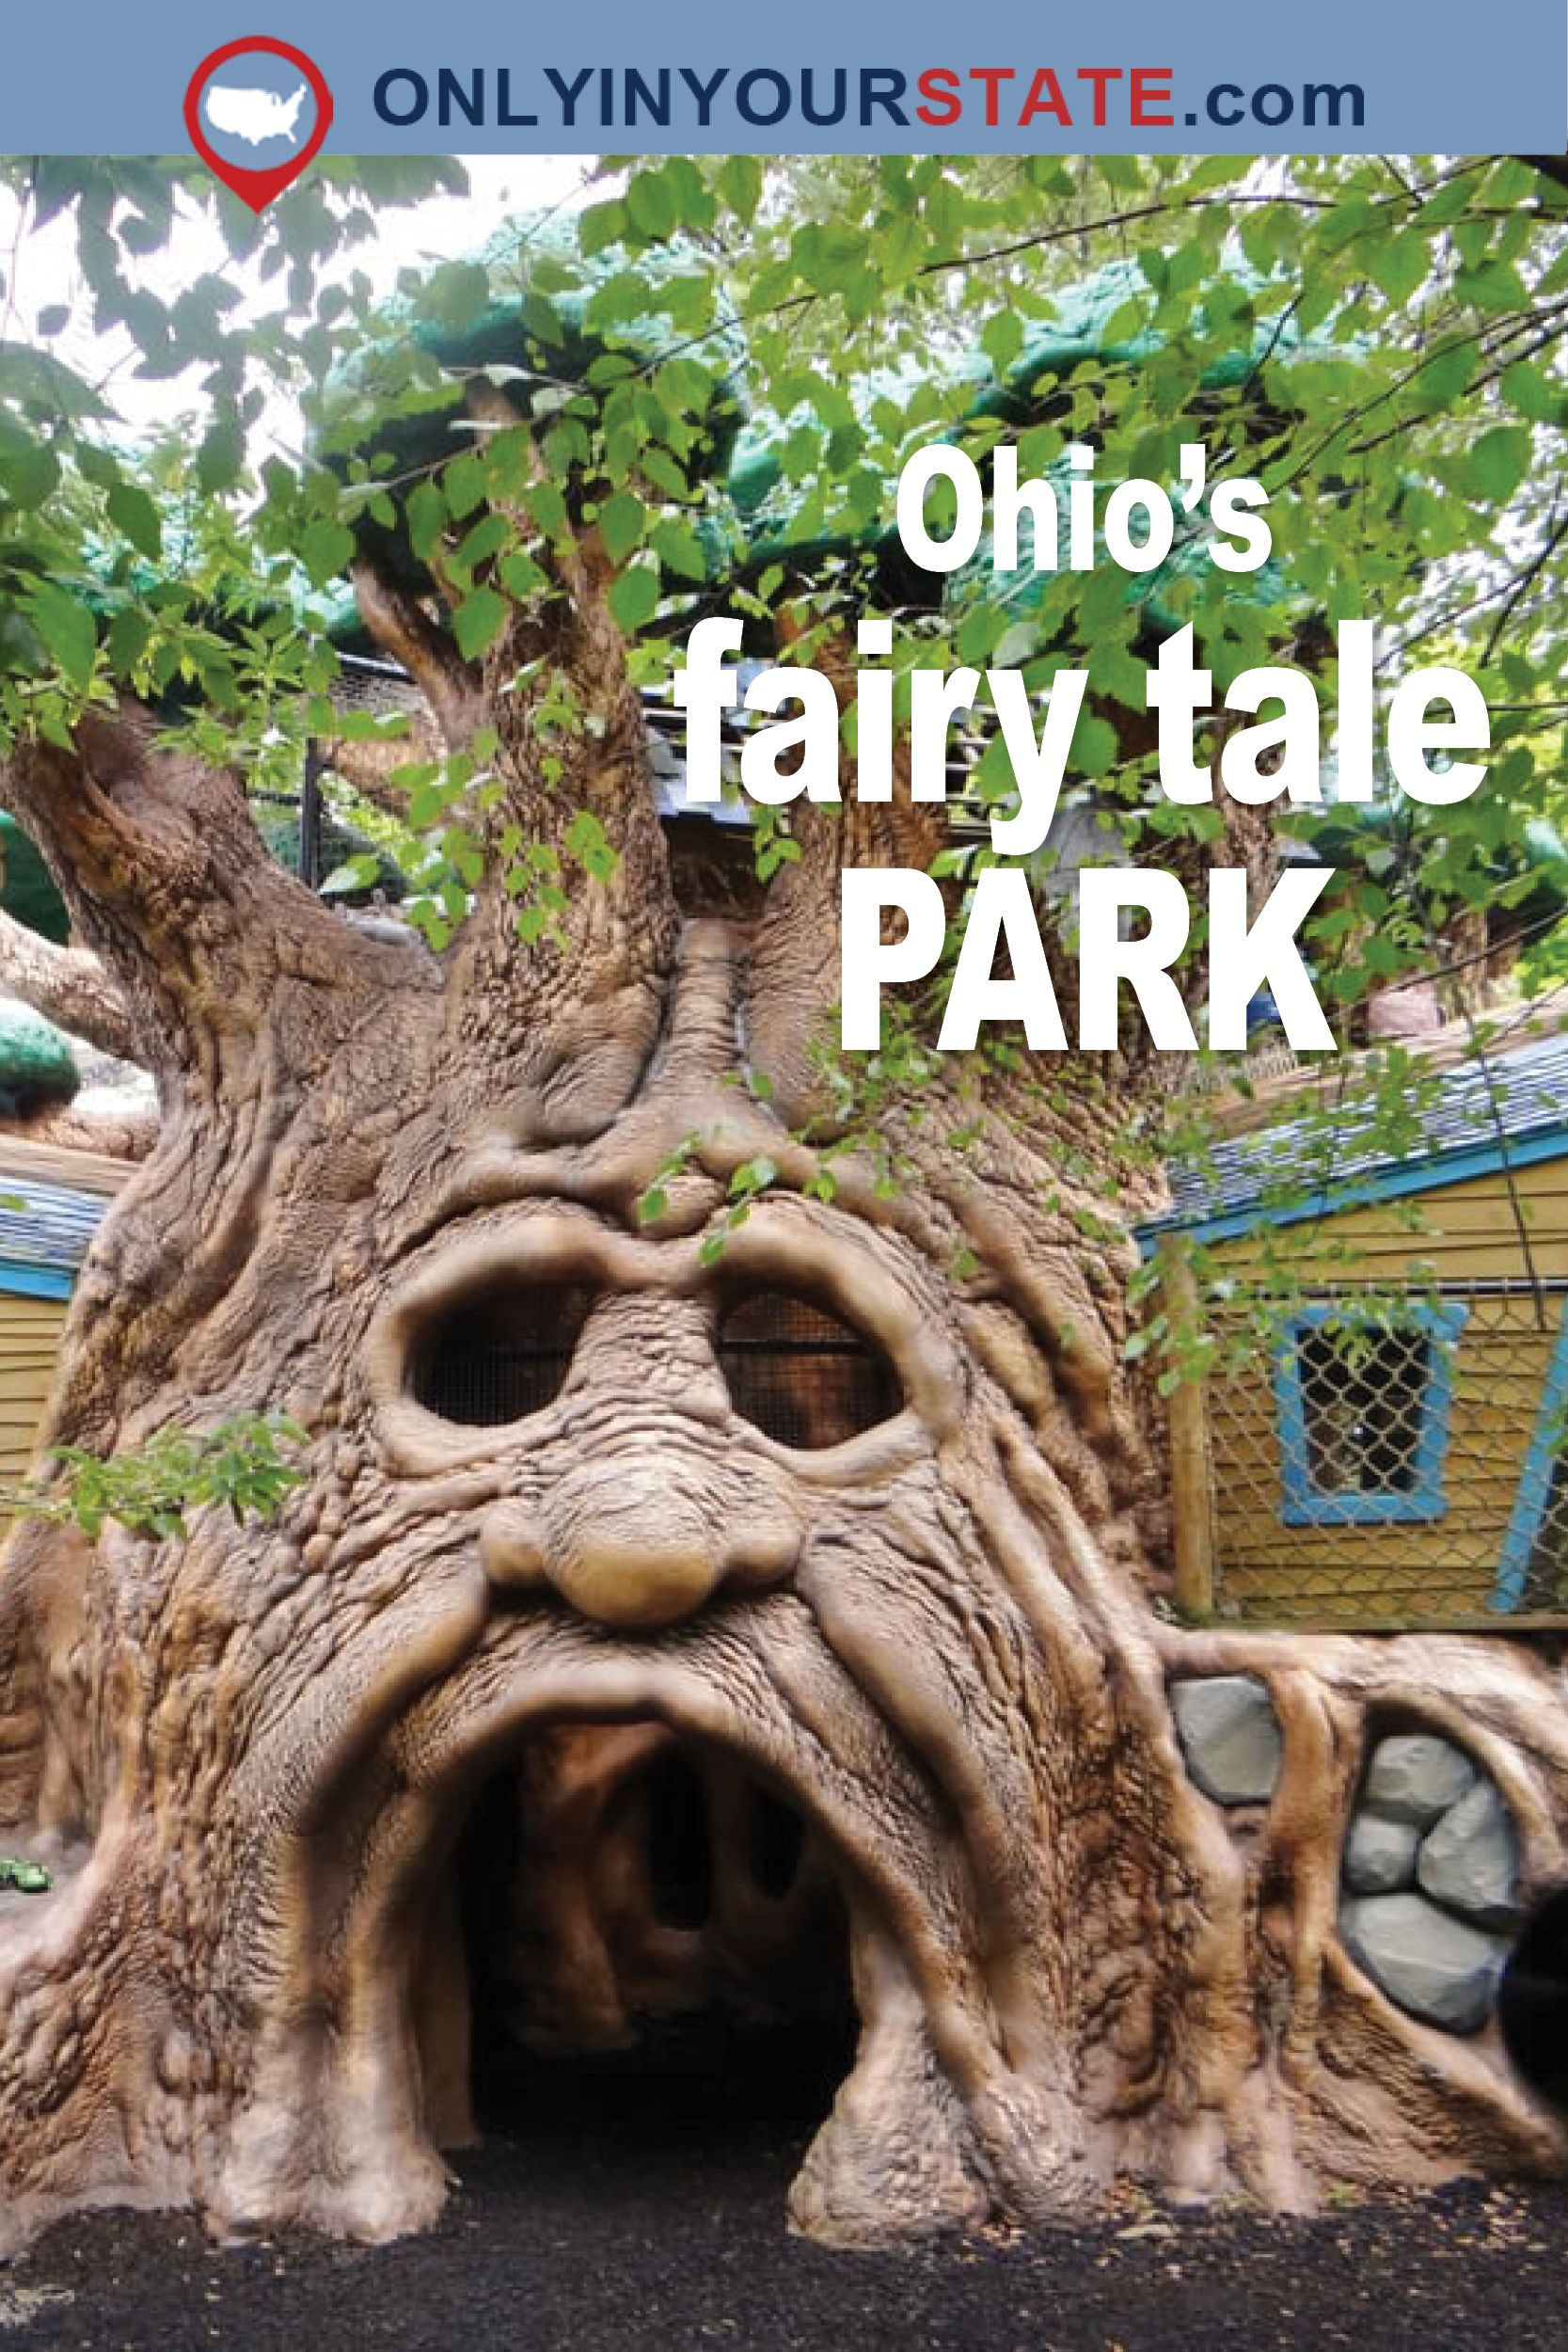 ohio fairy park attractions tale trips known travel looks weekend destinations usa adventure getaways onlyinyourstate trip spain gardens